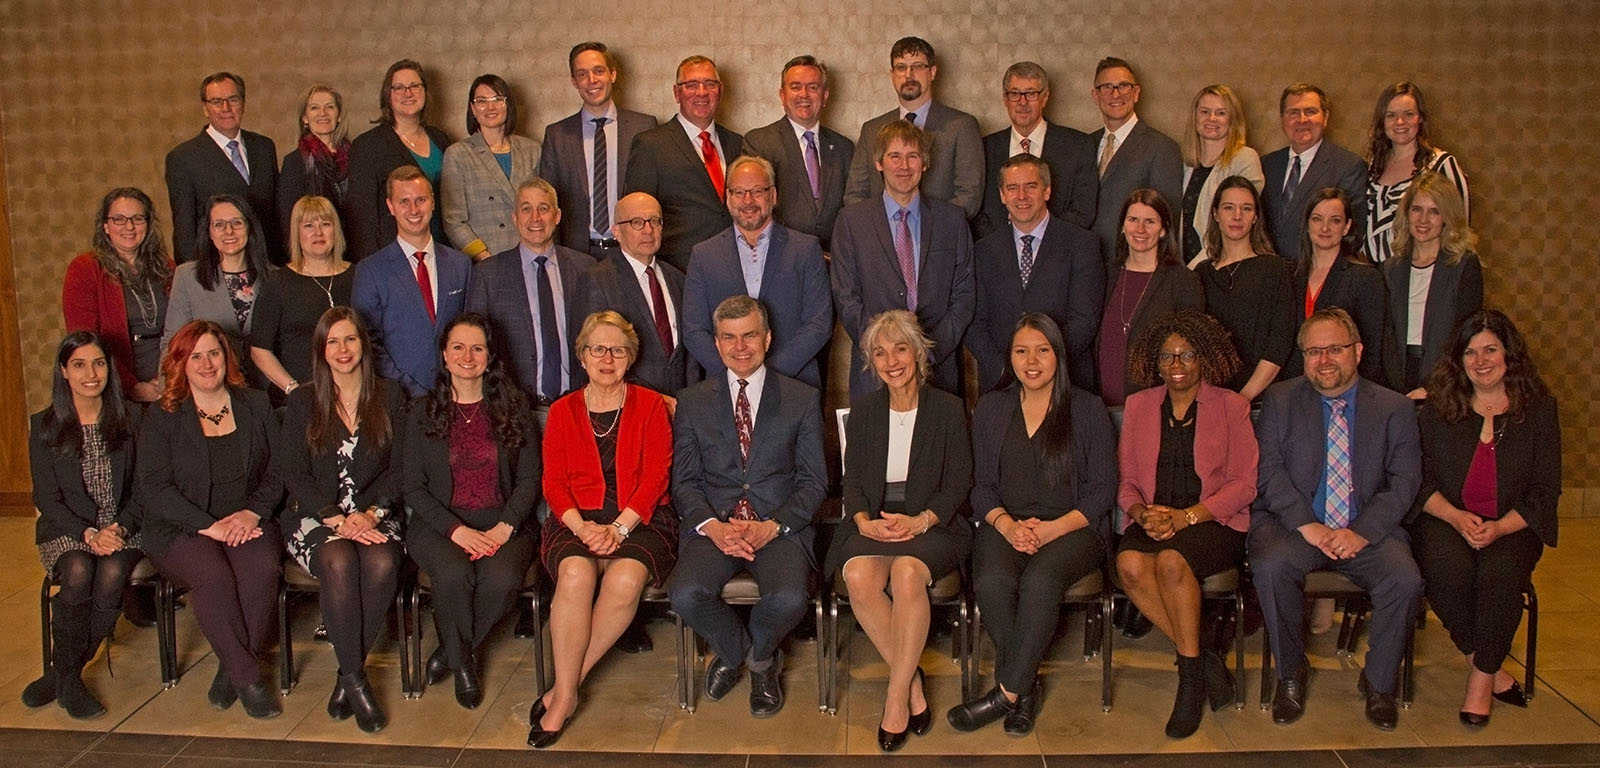 2019 Law Society of Saskatchewan Staff and benchers